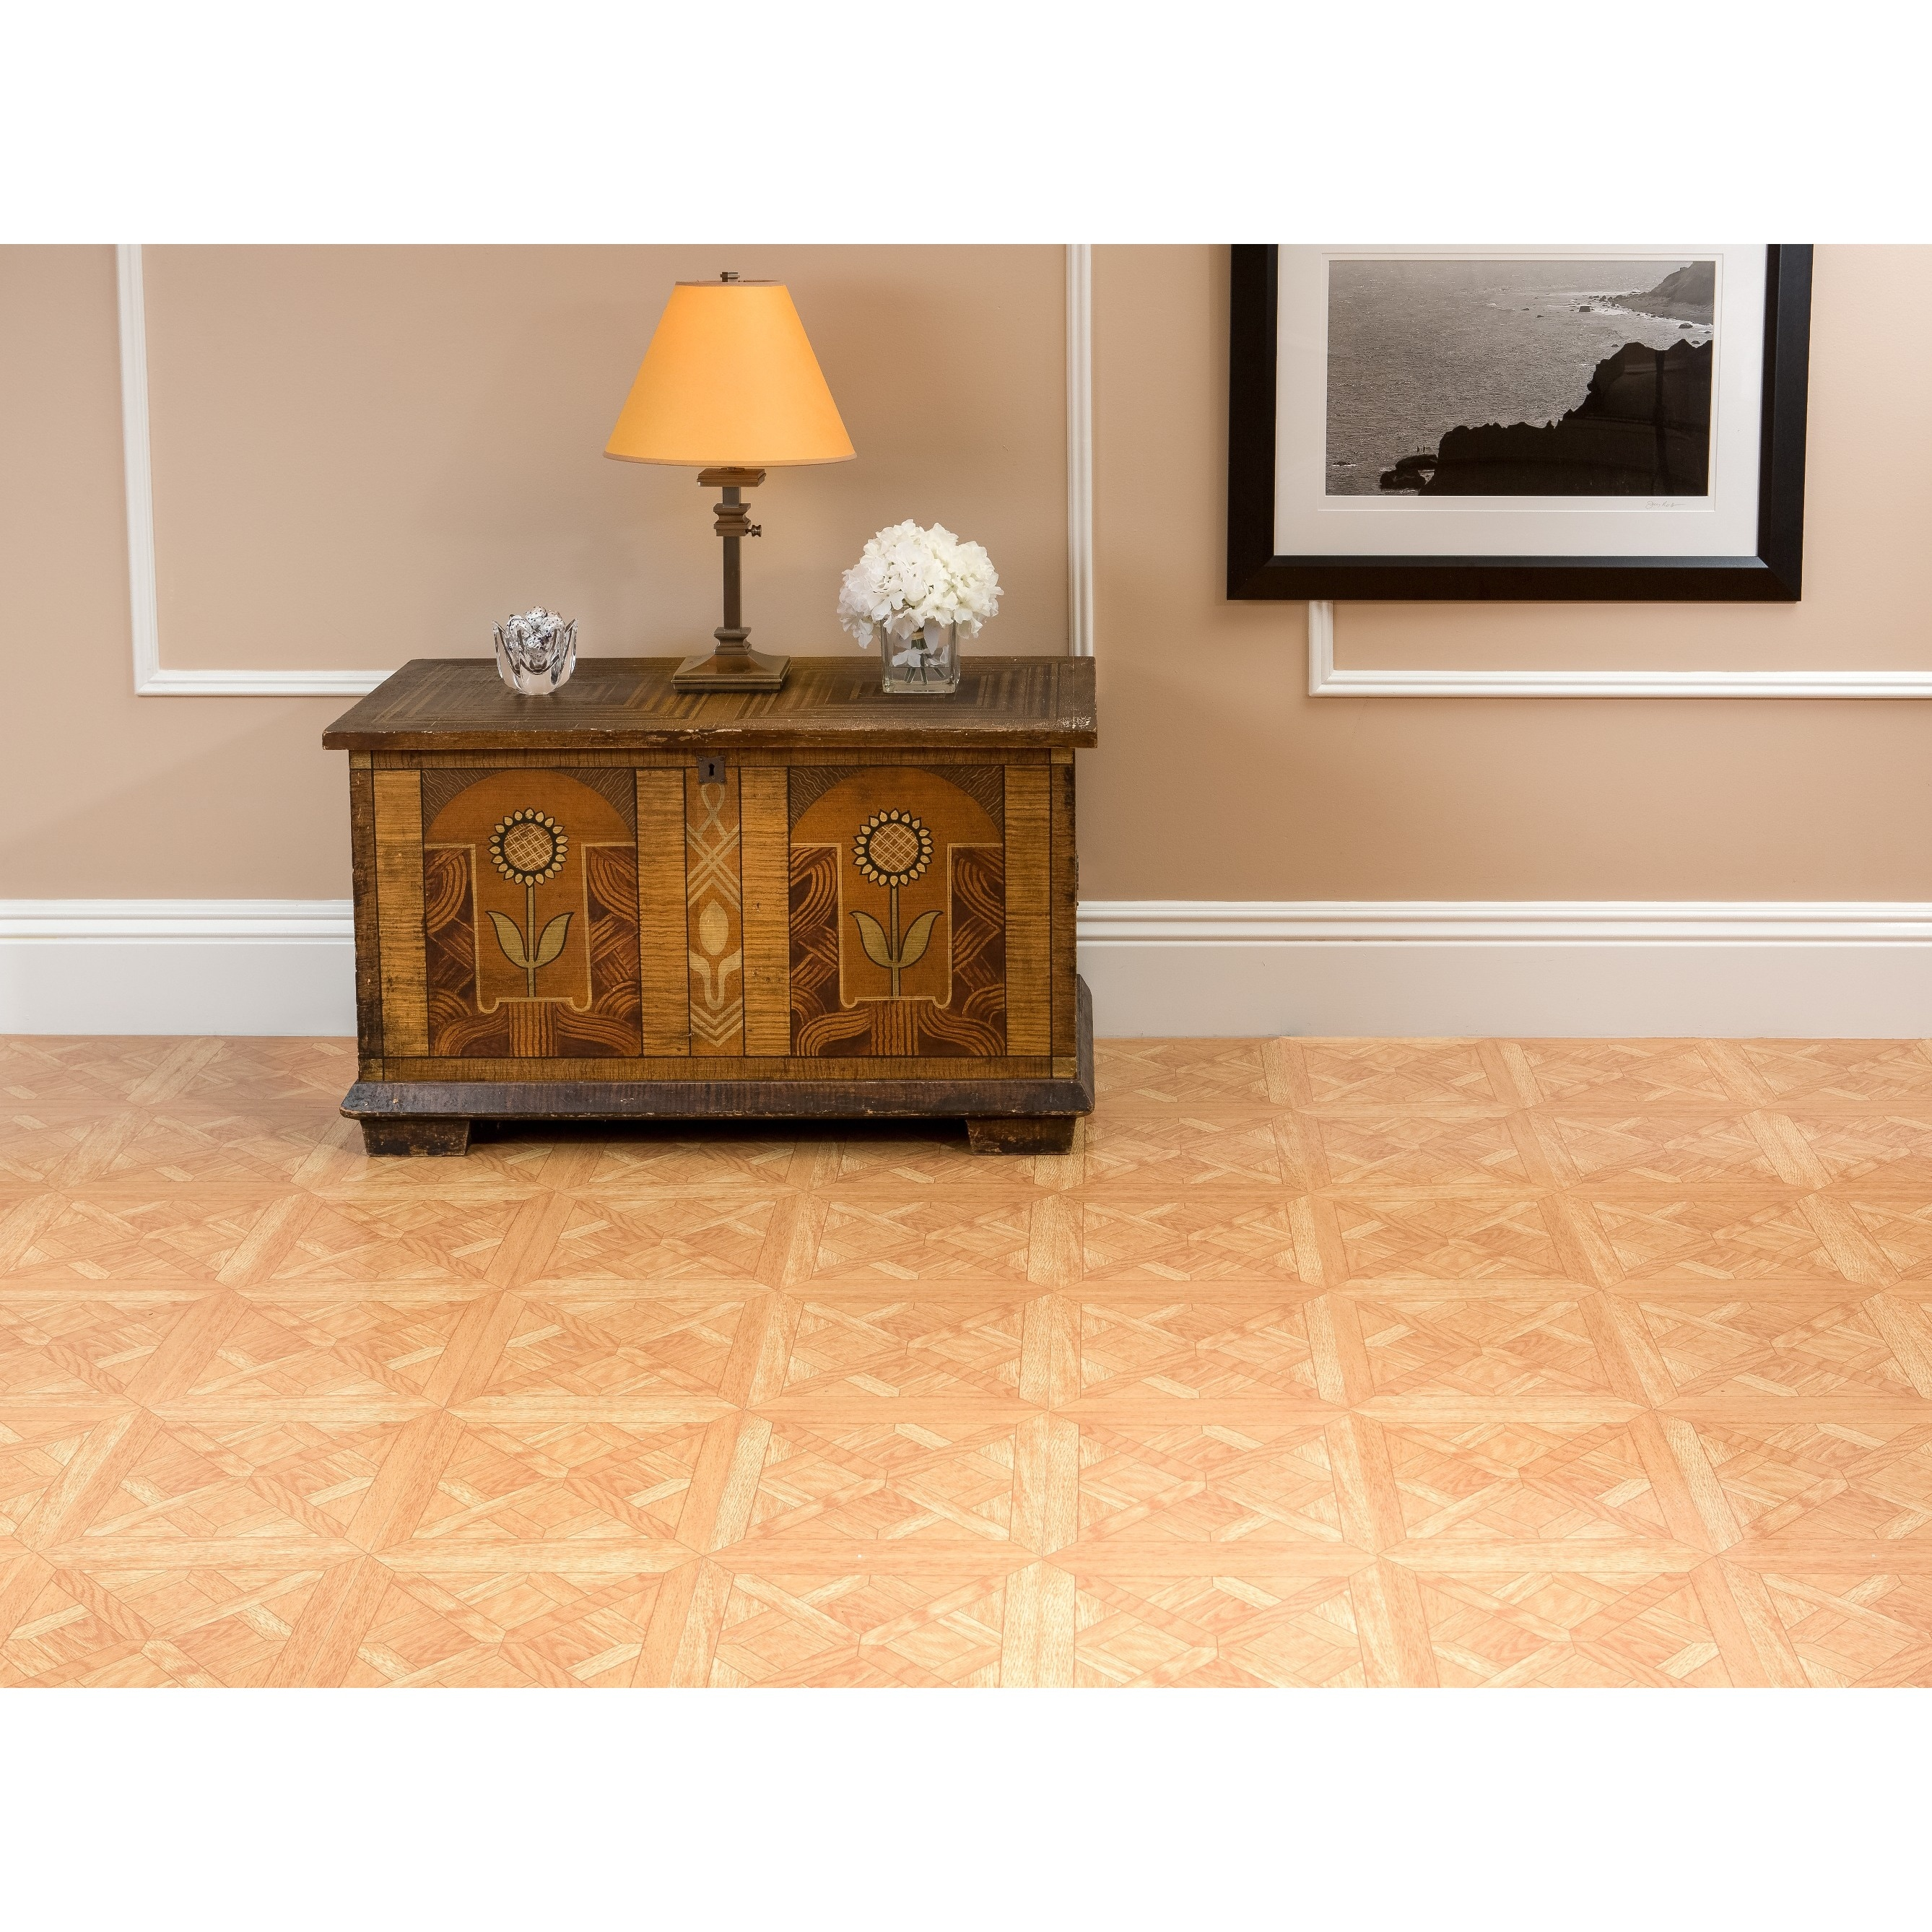 Achim nexus wood look 12x12 self adhesive vinyl floor tile 20 achim nexus wood look 12x12 self adhesive vinyl floor tile 20 tiles20 sq ft free shipping on orders over 45 overstock 15774759 dailygadgetfo Image collections